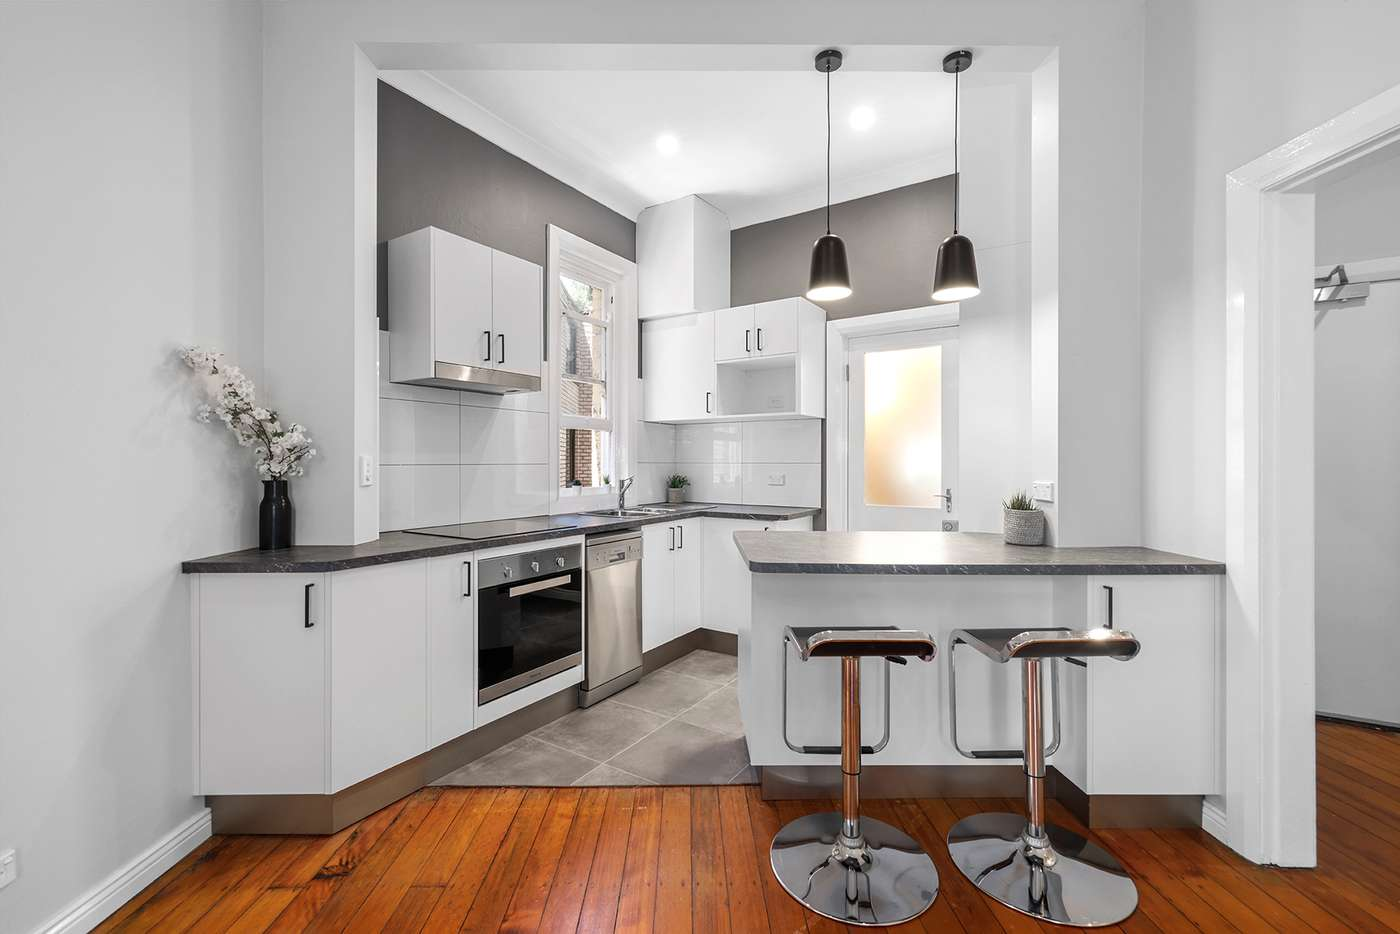 Main view of Homely apartment listing, 17/1 Darley Street, Darlinghurst NSW 2010